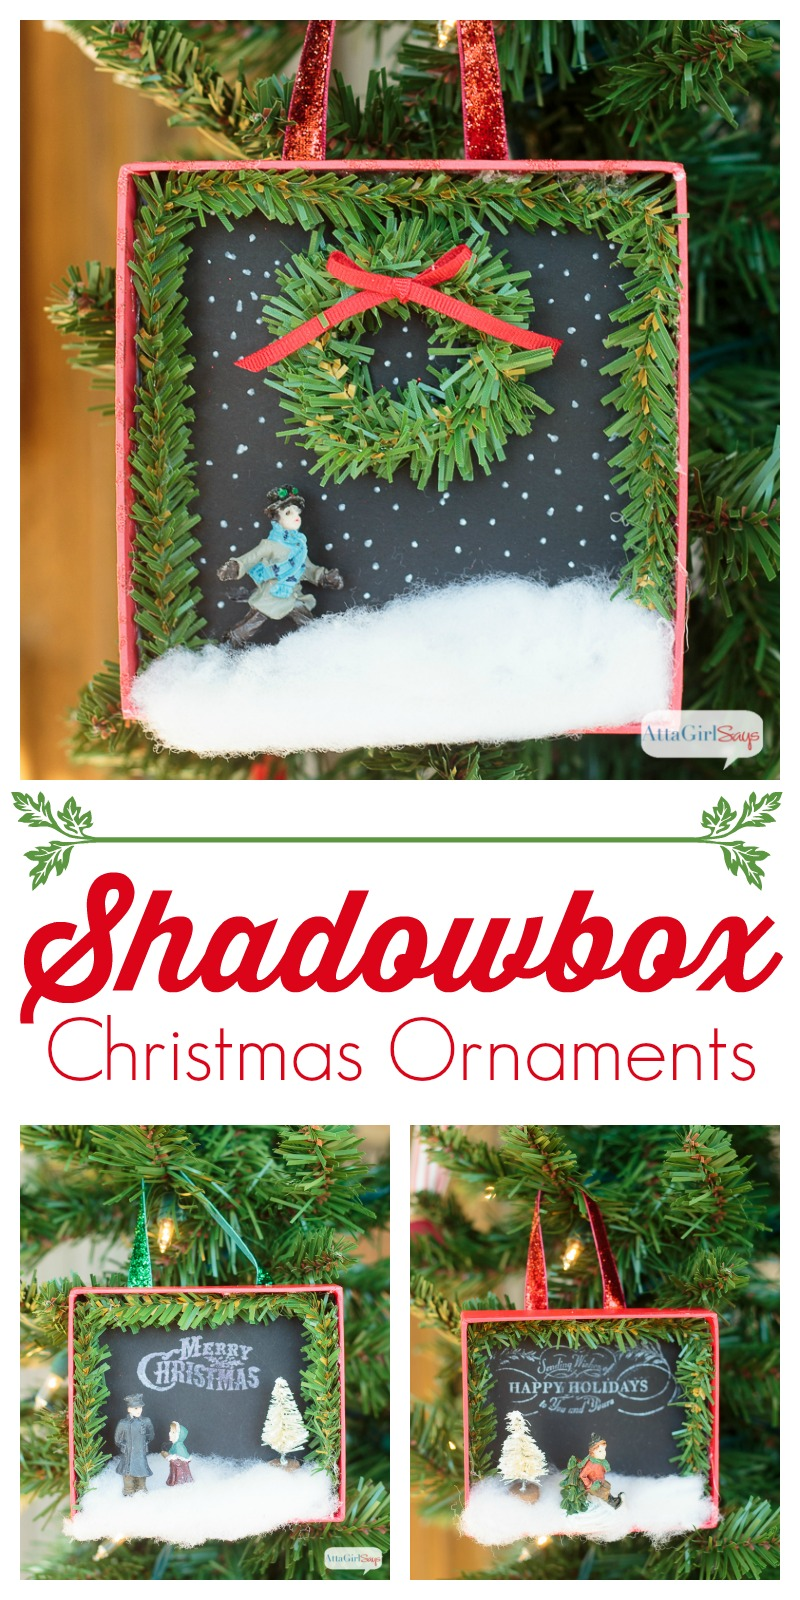 Shadowbox diy christmas ornaments atta girl says - Great christmas ornaments that you need for your home ...